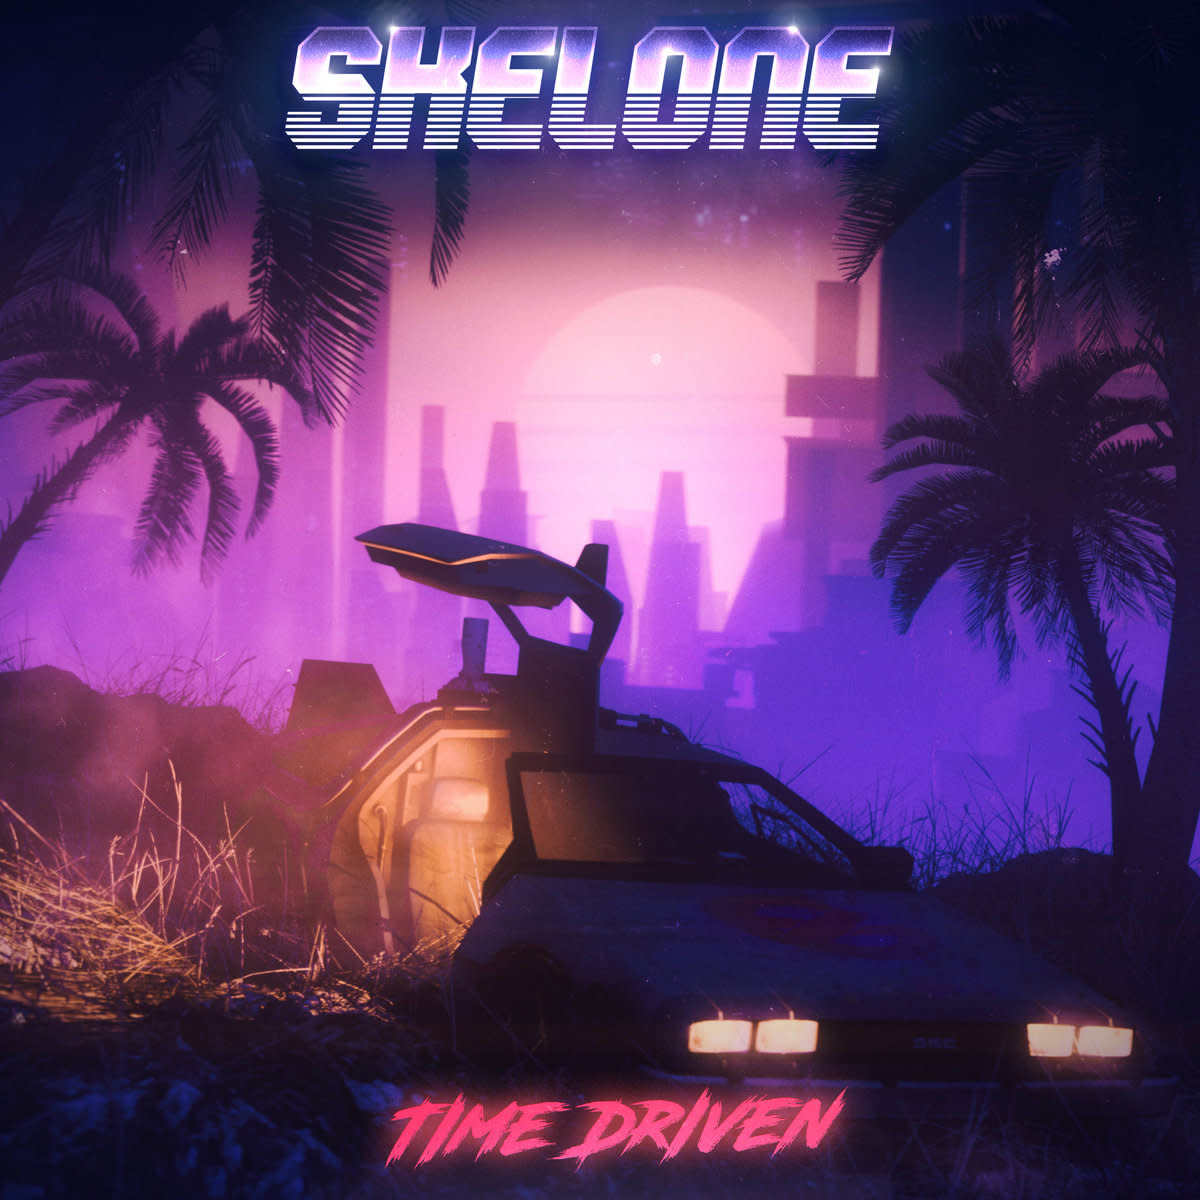 synth-album-revew-time-driven-by-skelone-and-guests